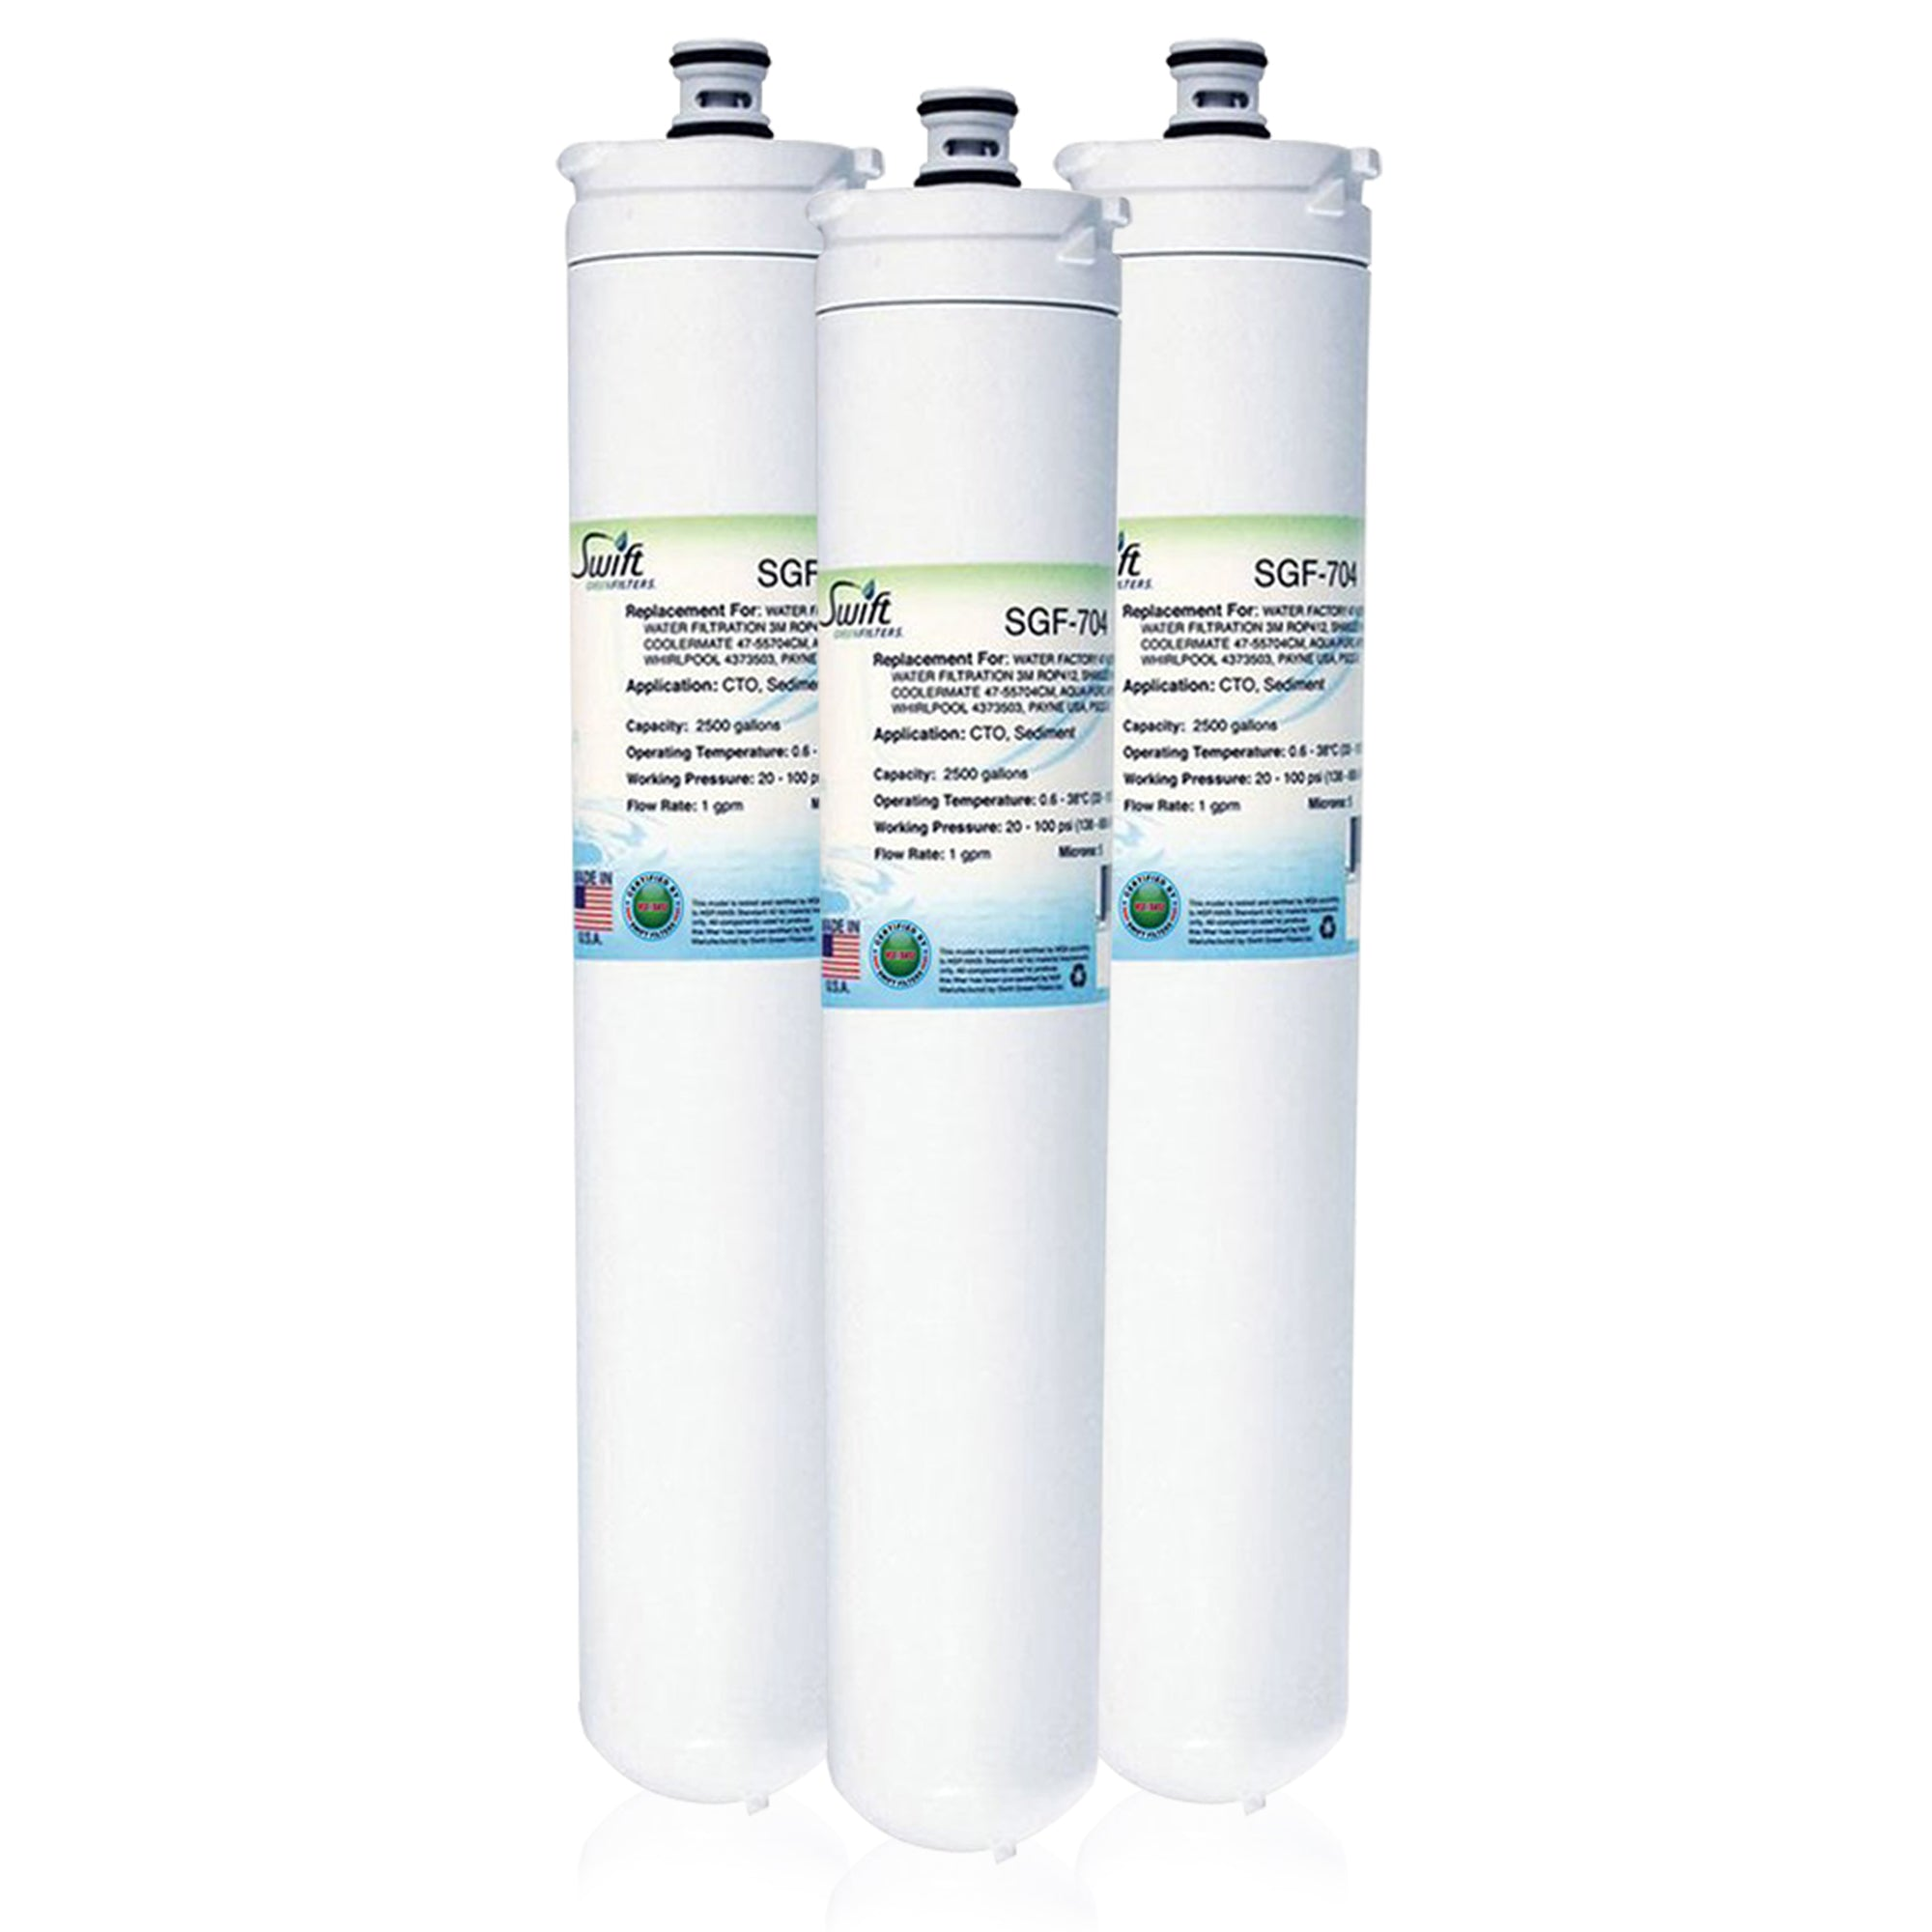 Replacement for 3M Water Factory 47-55704G2 Filter by Swift Green Filters SGF-704